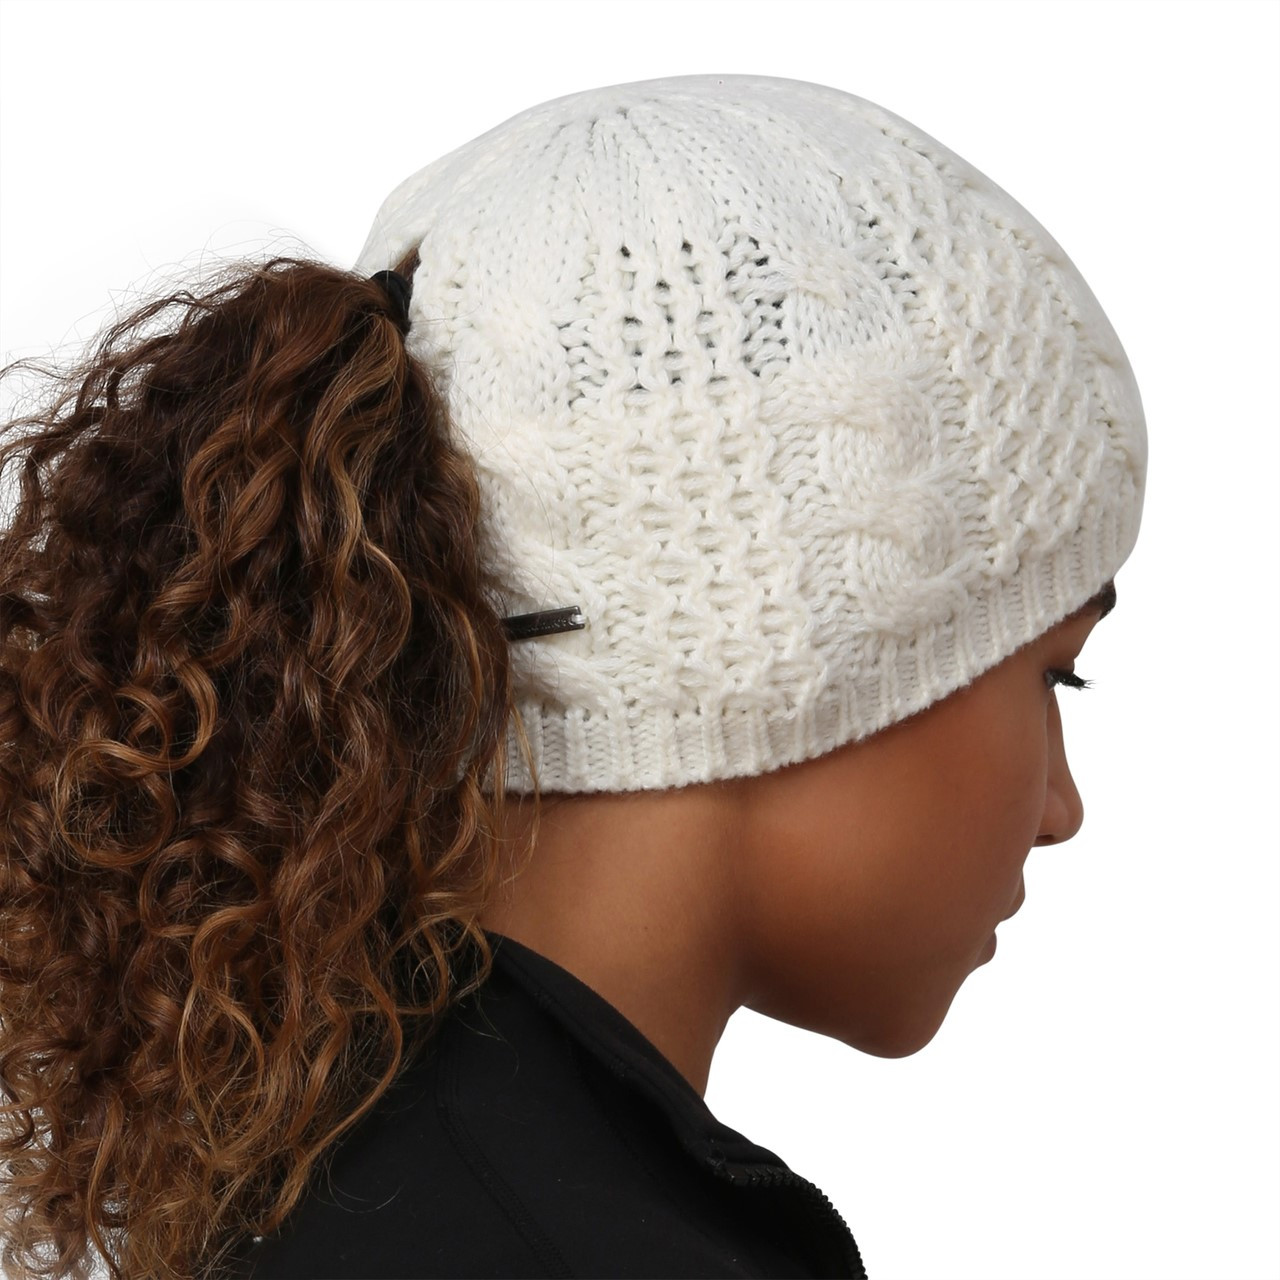 Ponytail Beanie Hat Luxury Trailheads Women S Cable Knit Ponytail Beanie Wintry Of Amazing 48 Pictures Ponytail Beanie Hat